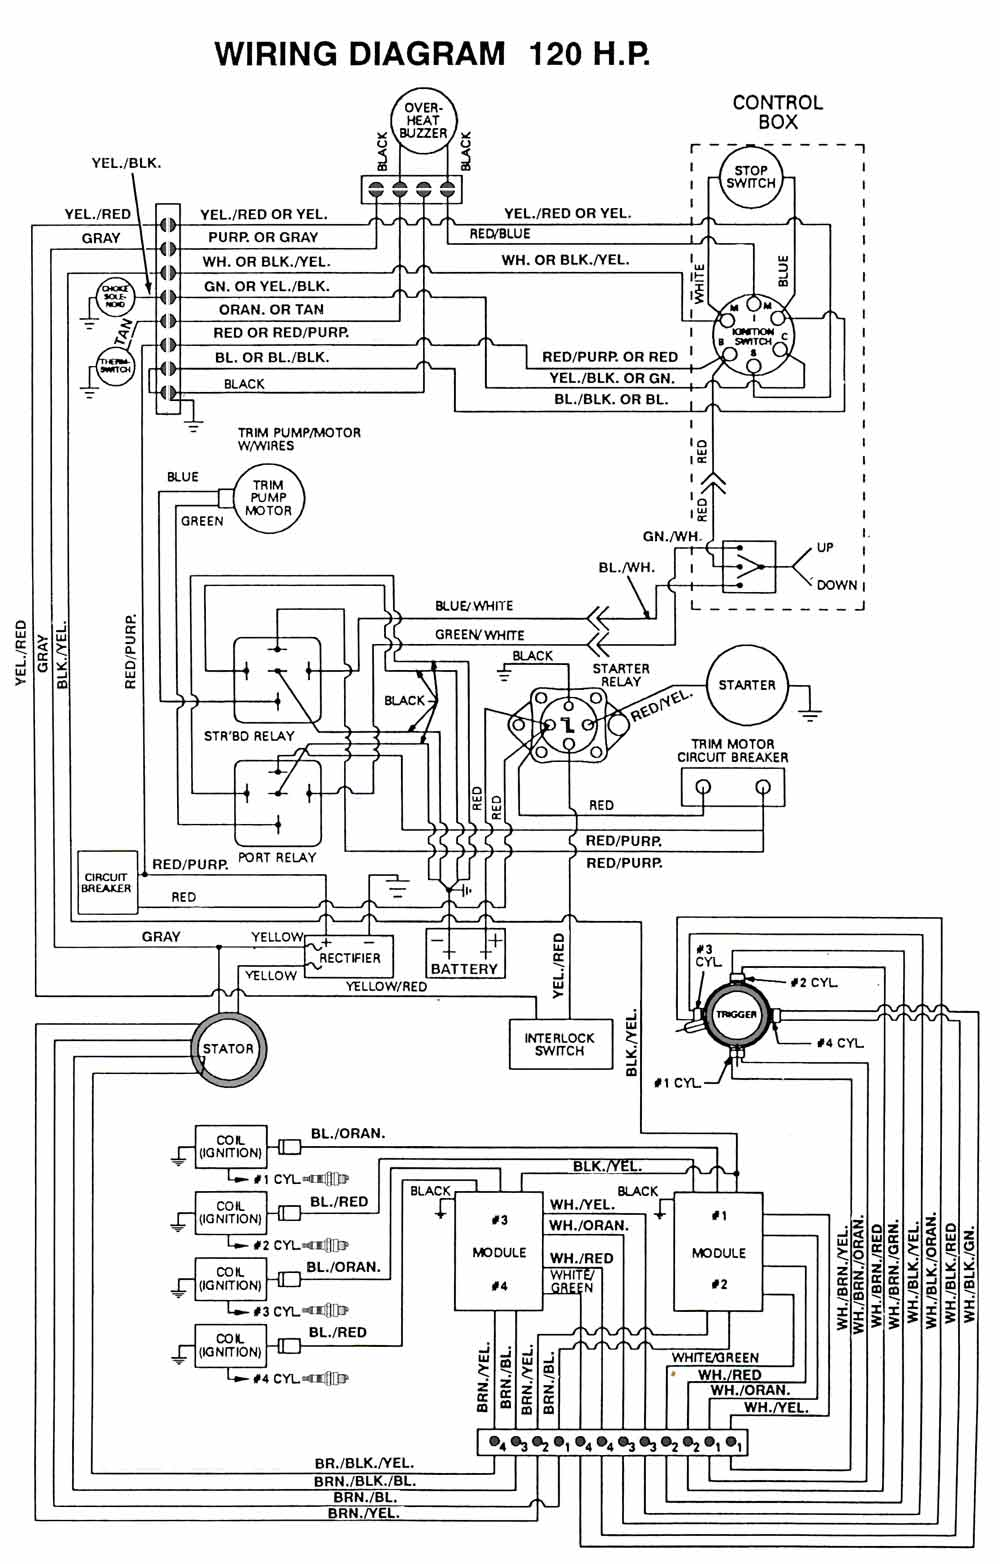 Mercruiser Ignition Wiring Diagram 120 Hp Books Of 75 Mercury Optimax Simple Rh David Huggett Co Uk